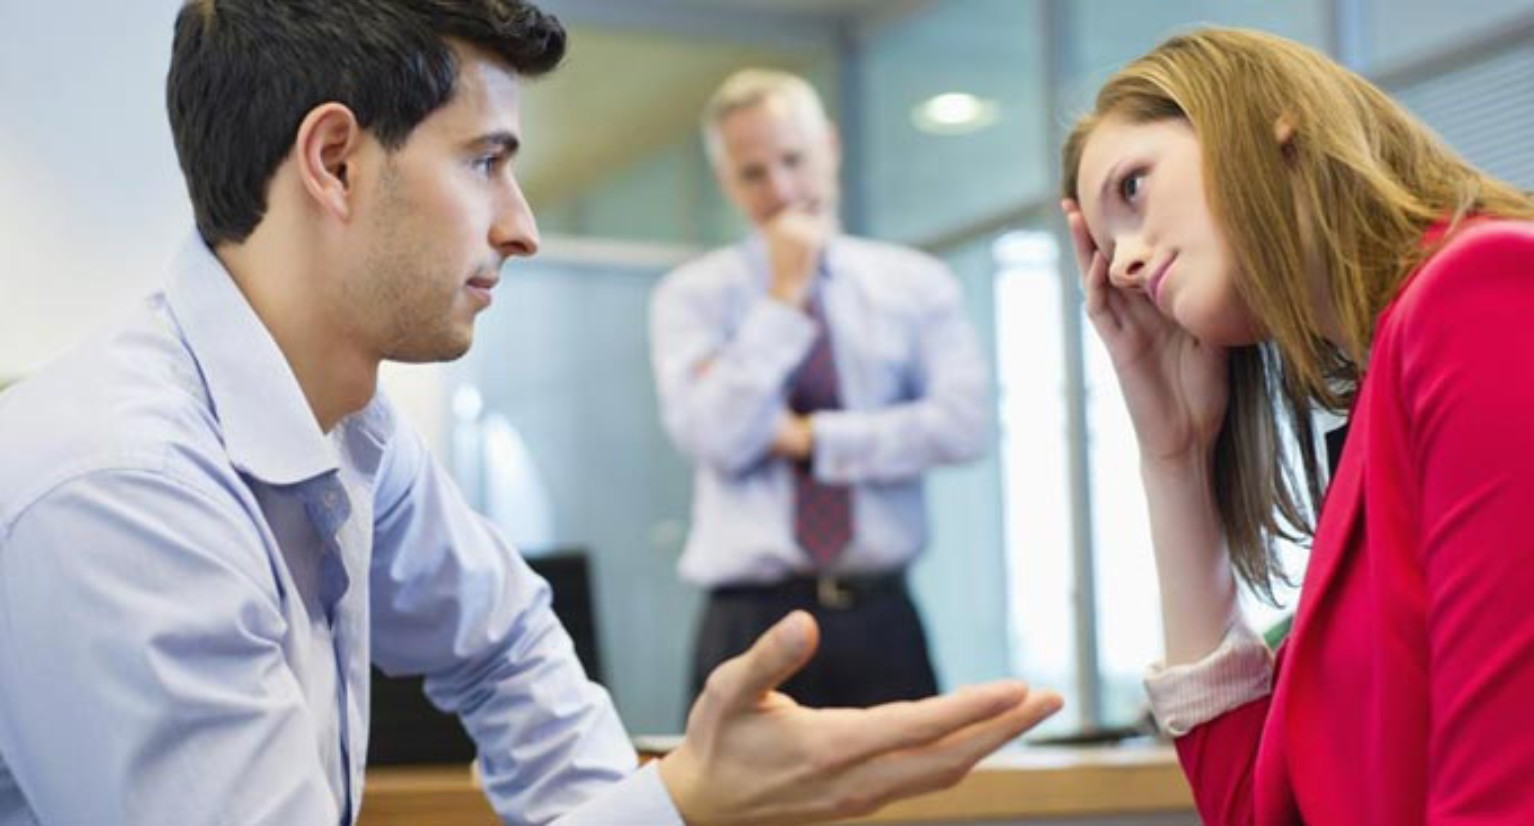 How to Respectfully Layoff Employees